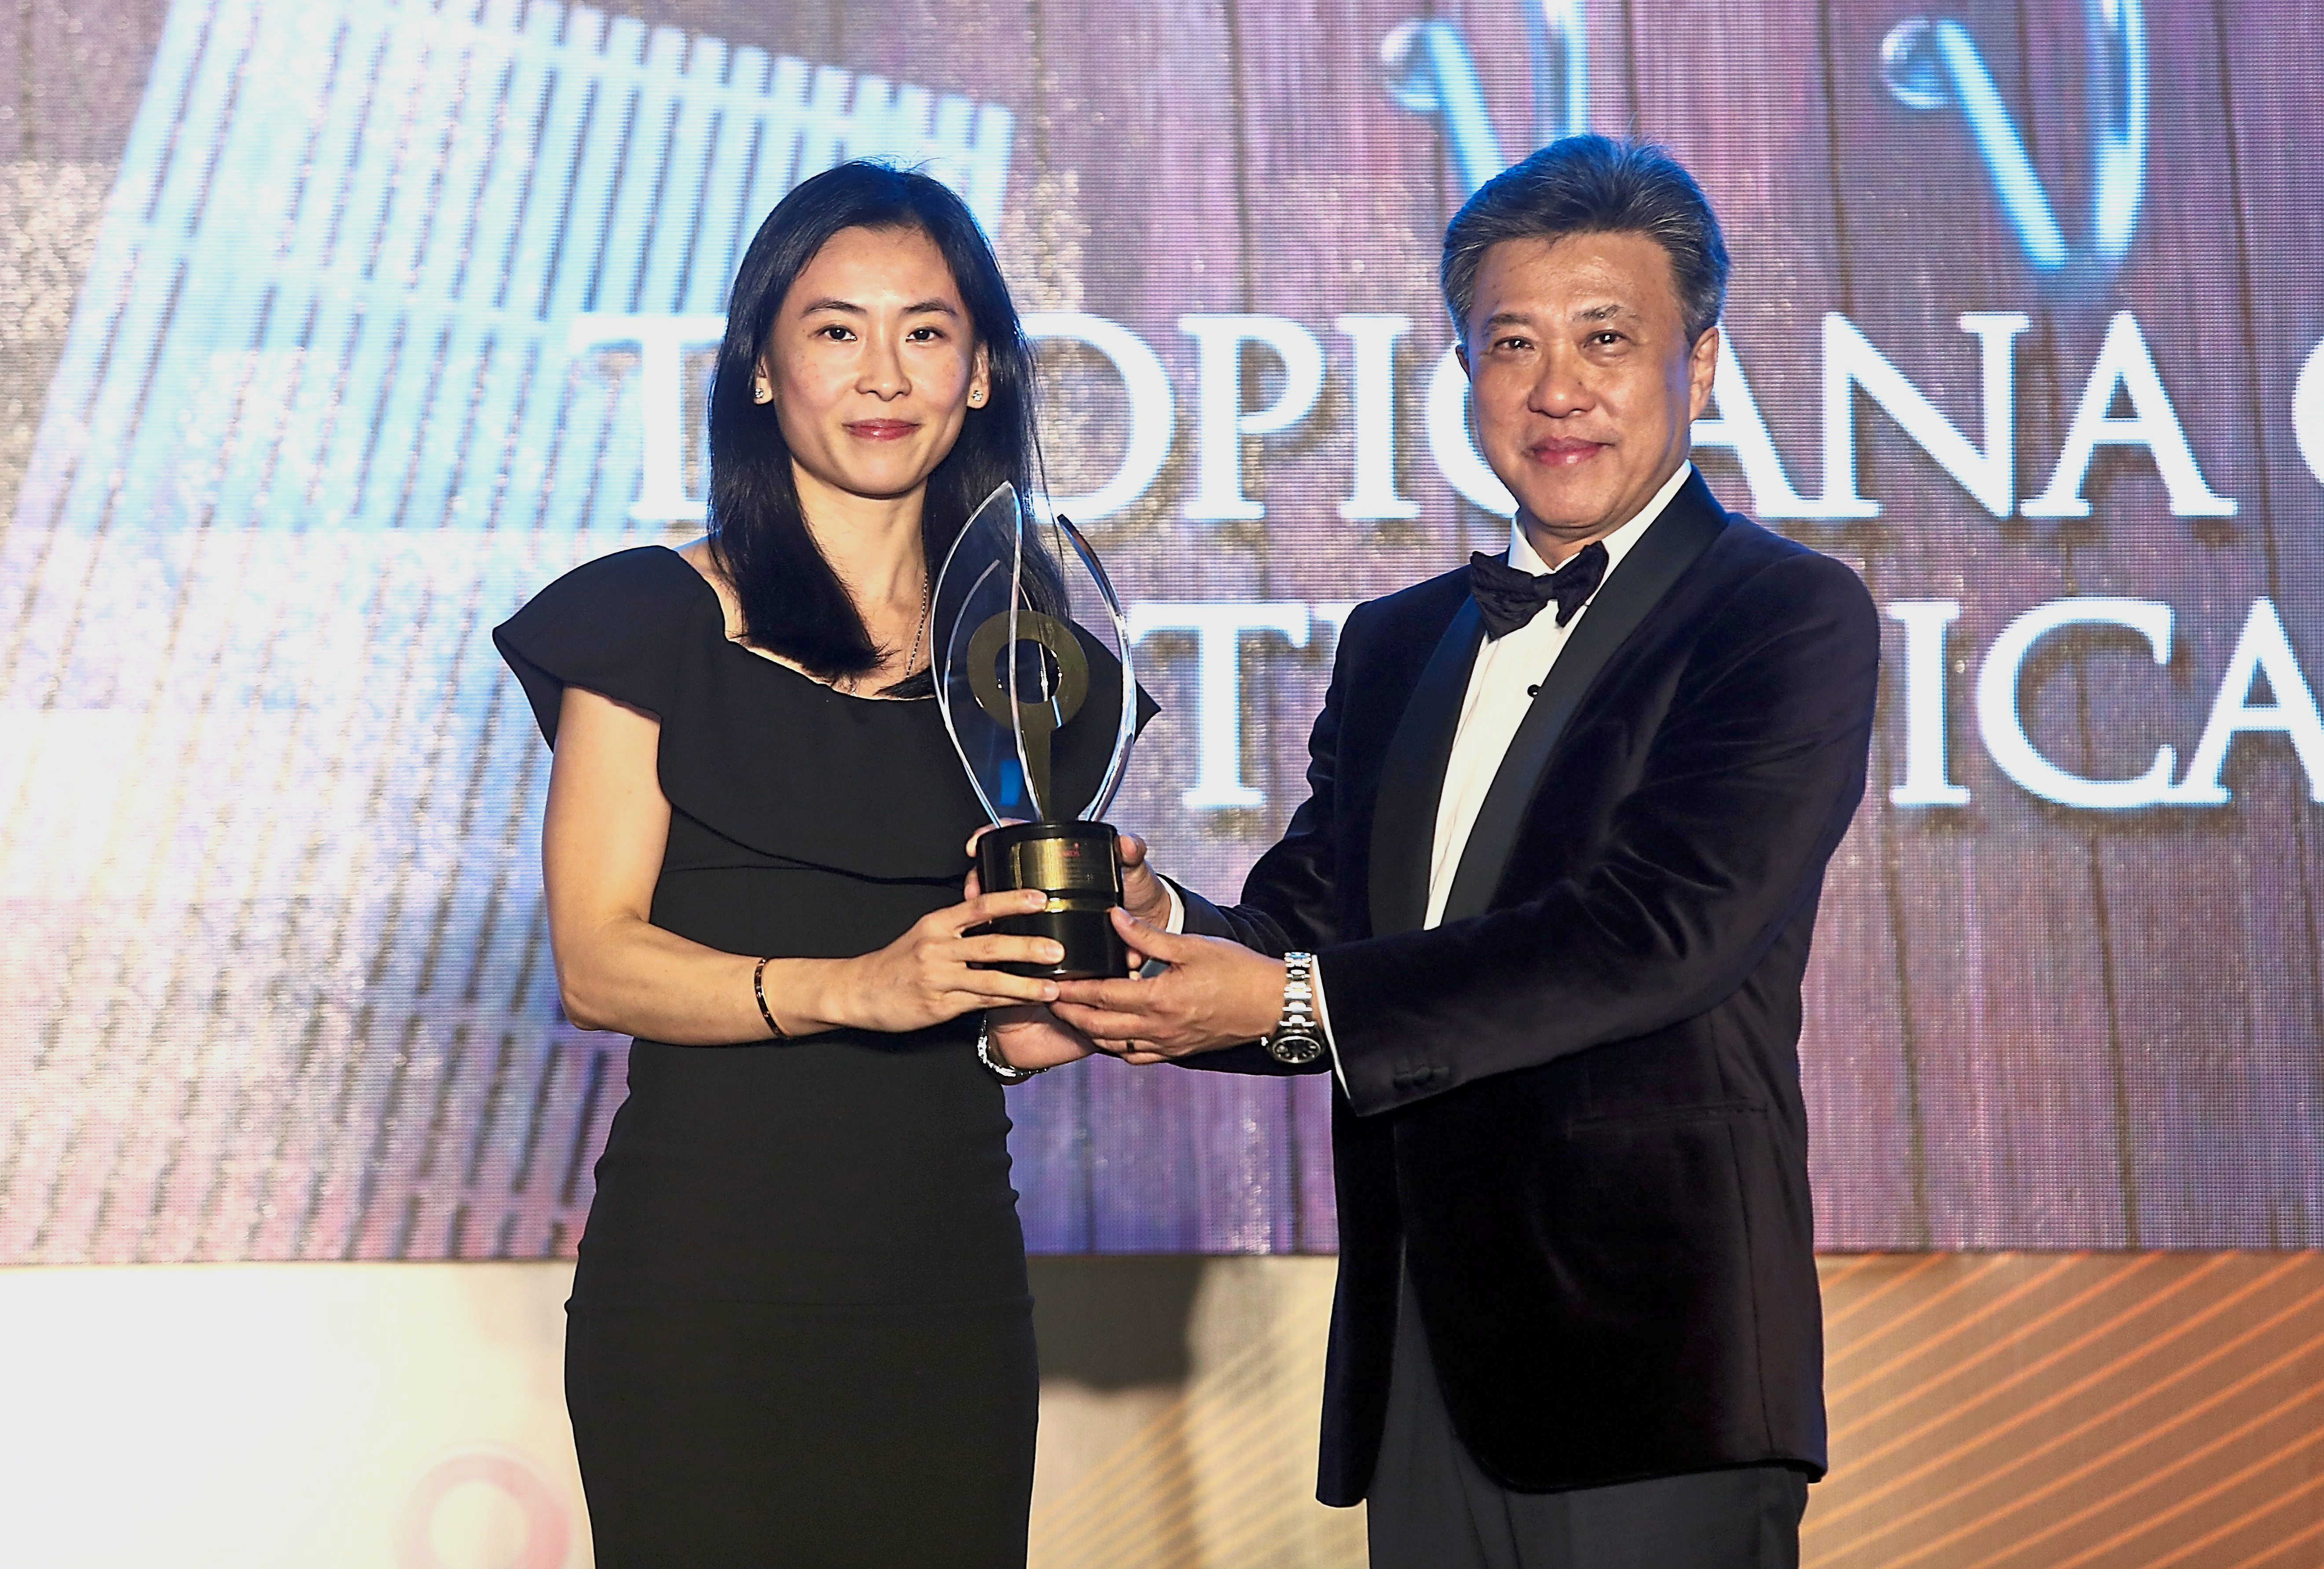 Ung receiving excellence award in The Niche & Unique category for Tropicana Residences.